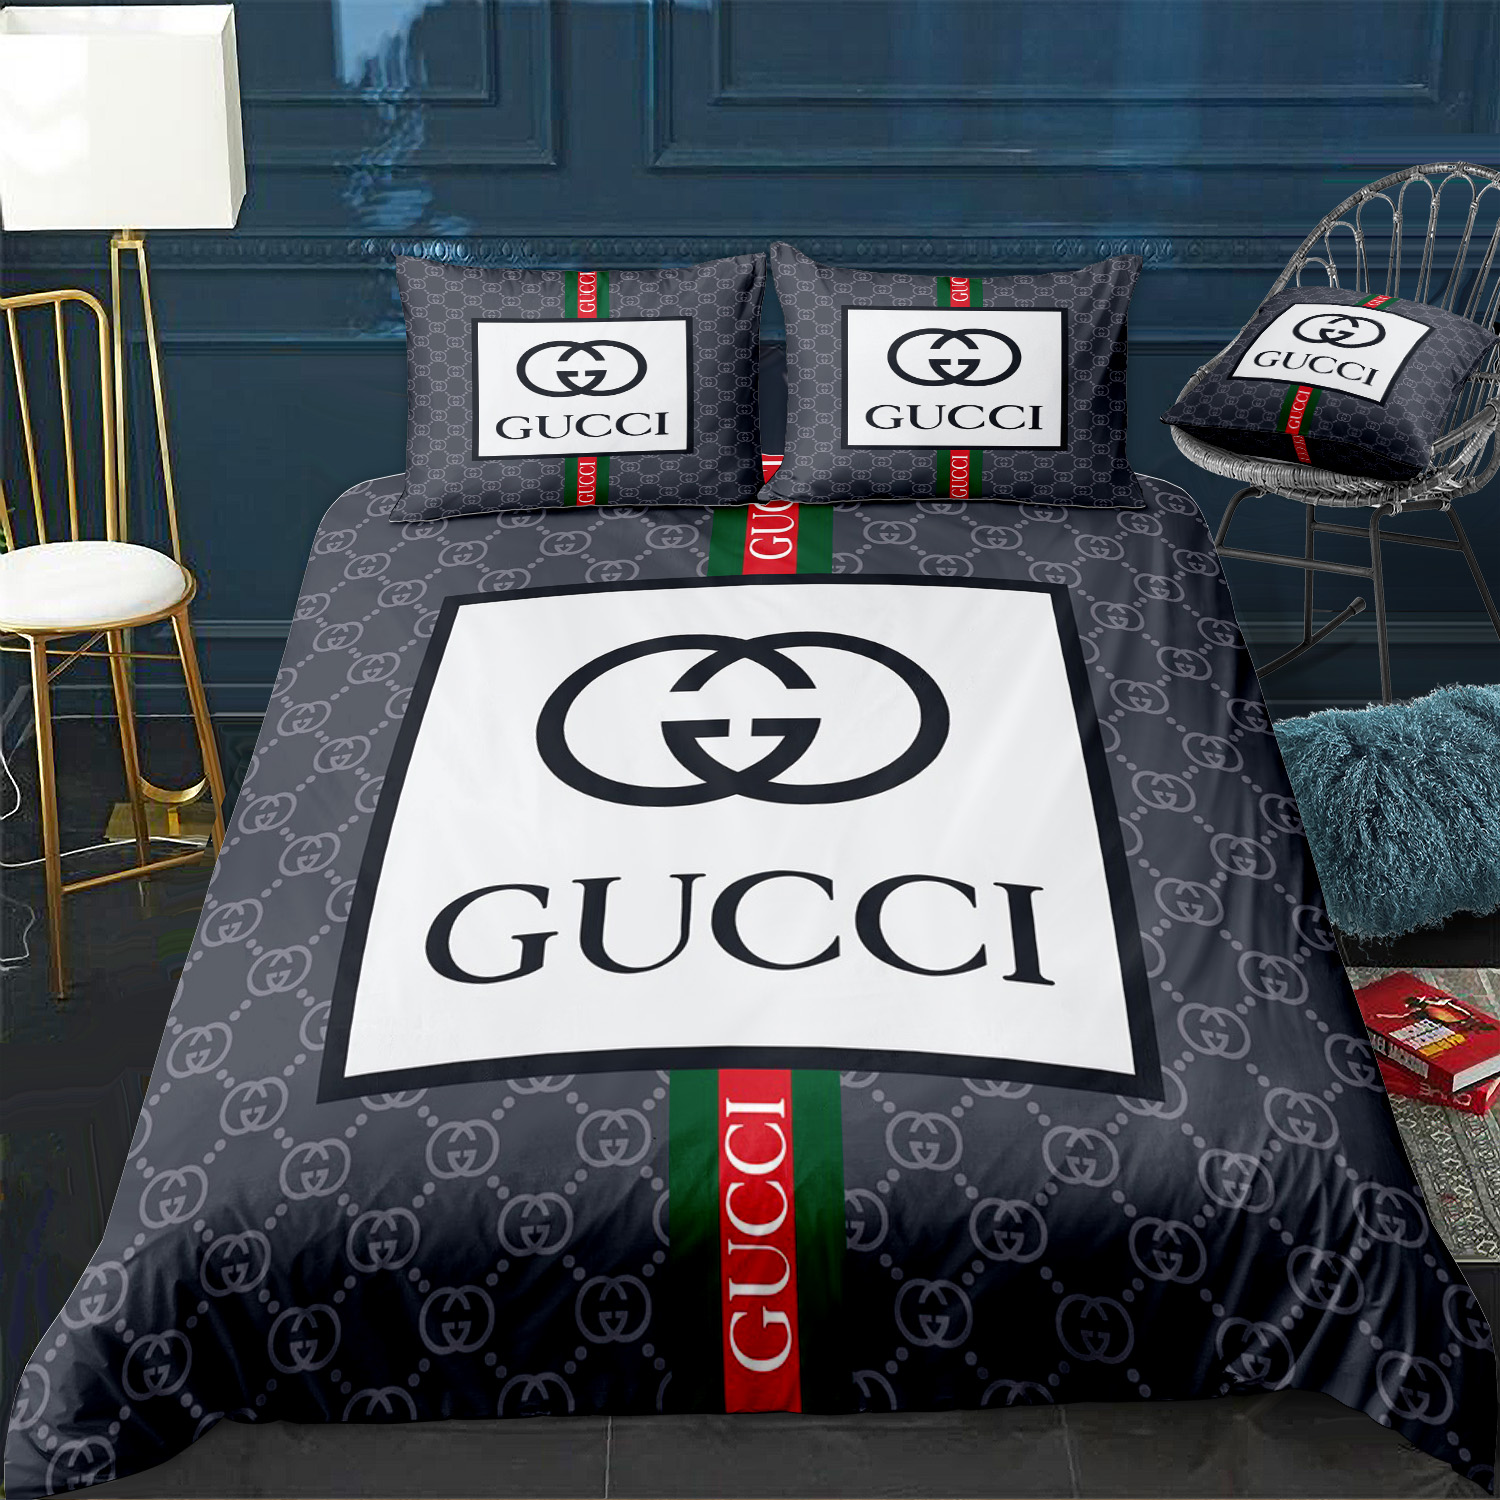 Gucci Fashion Custom Bedding Set Duvet Cover Pillowcases Crislux